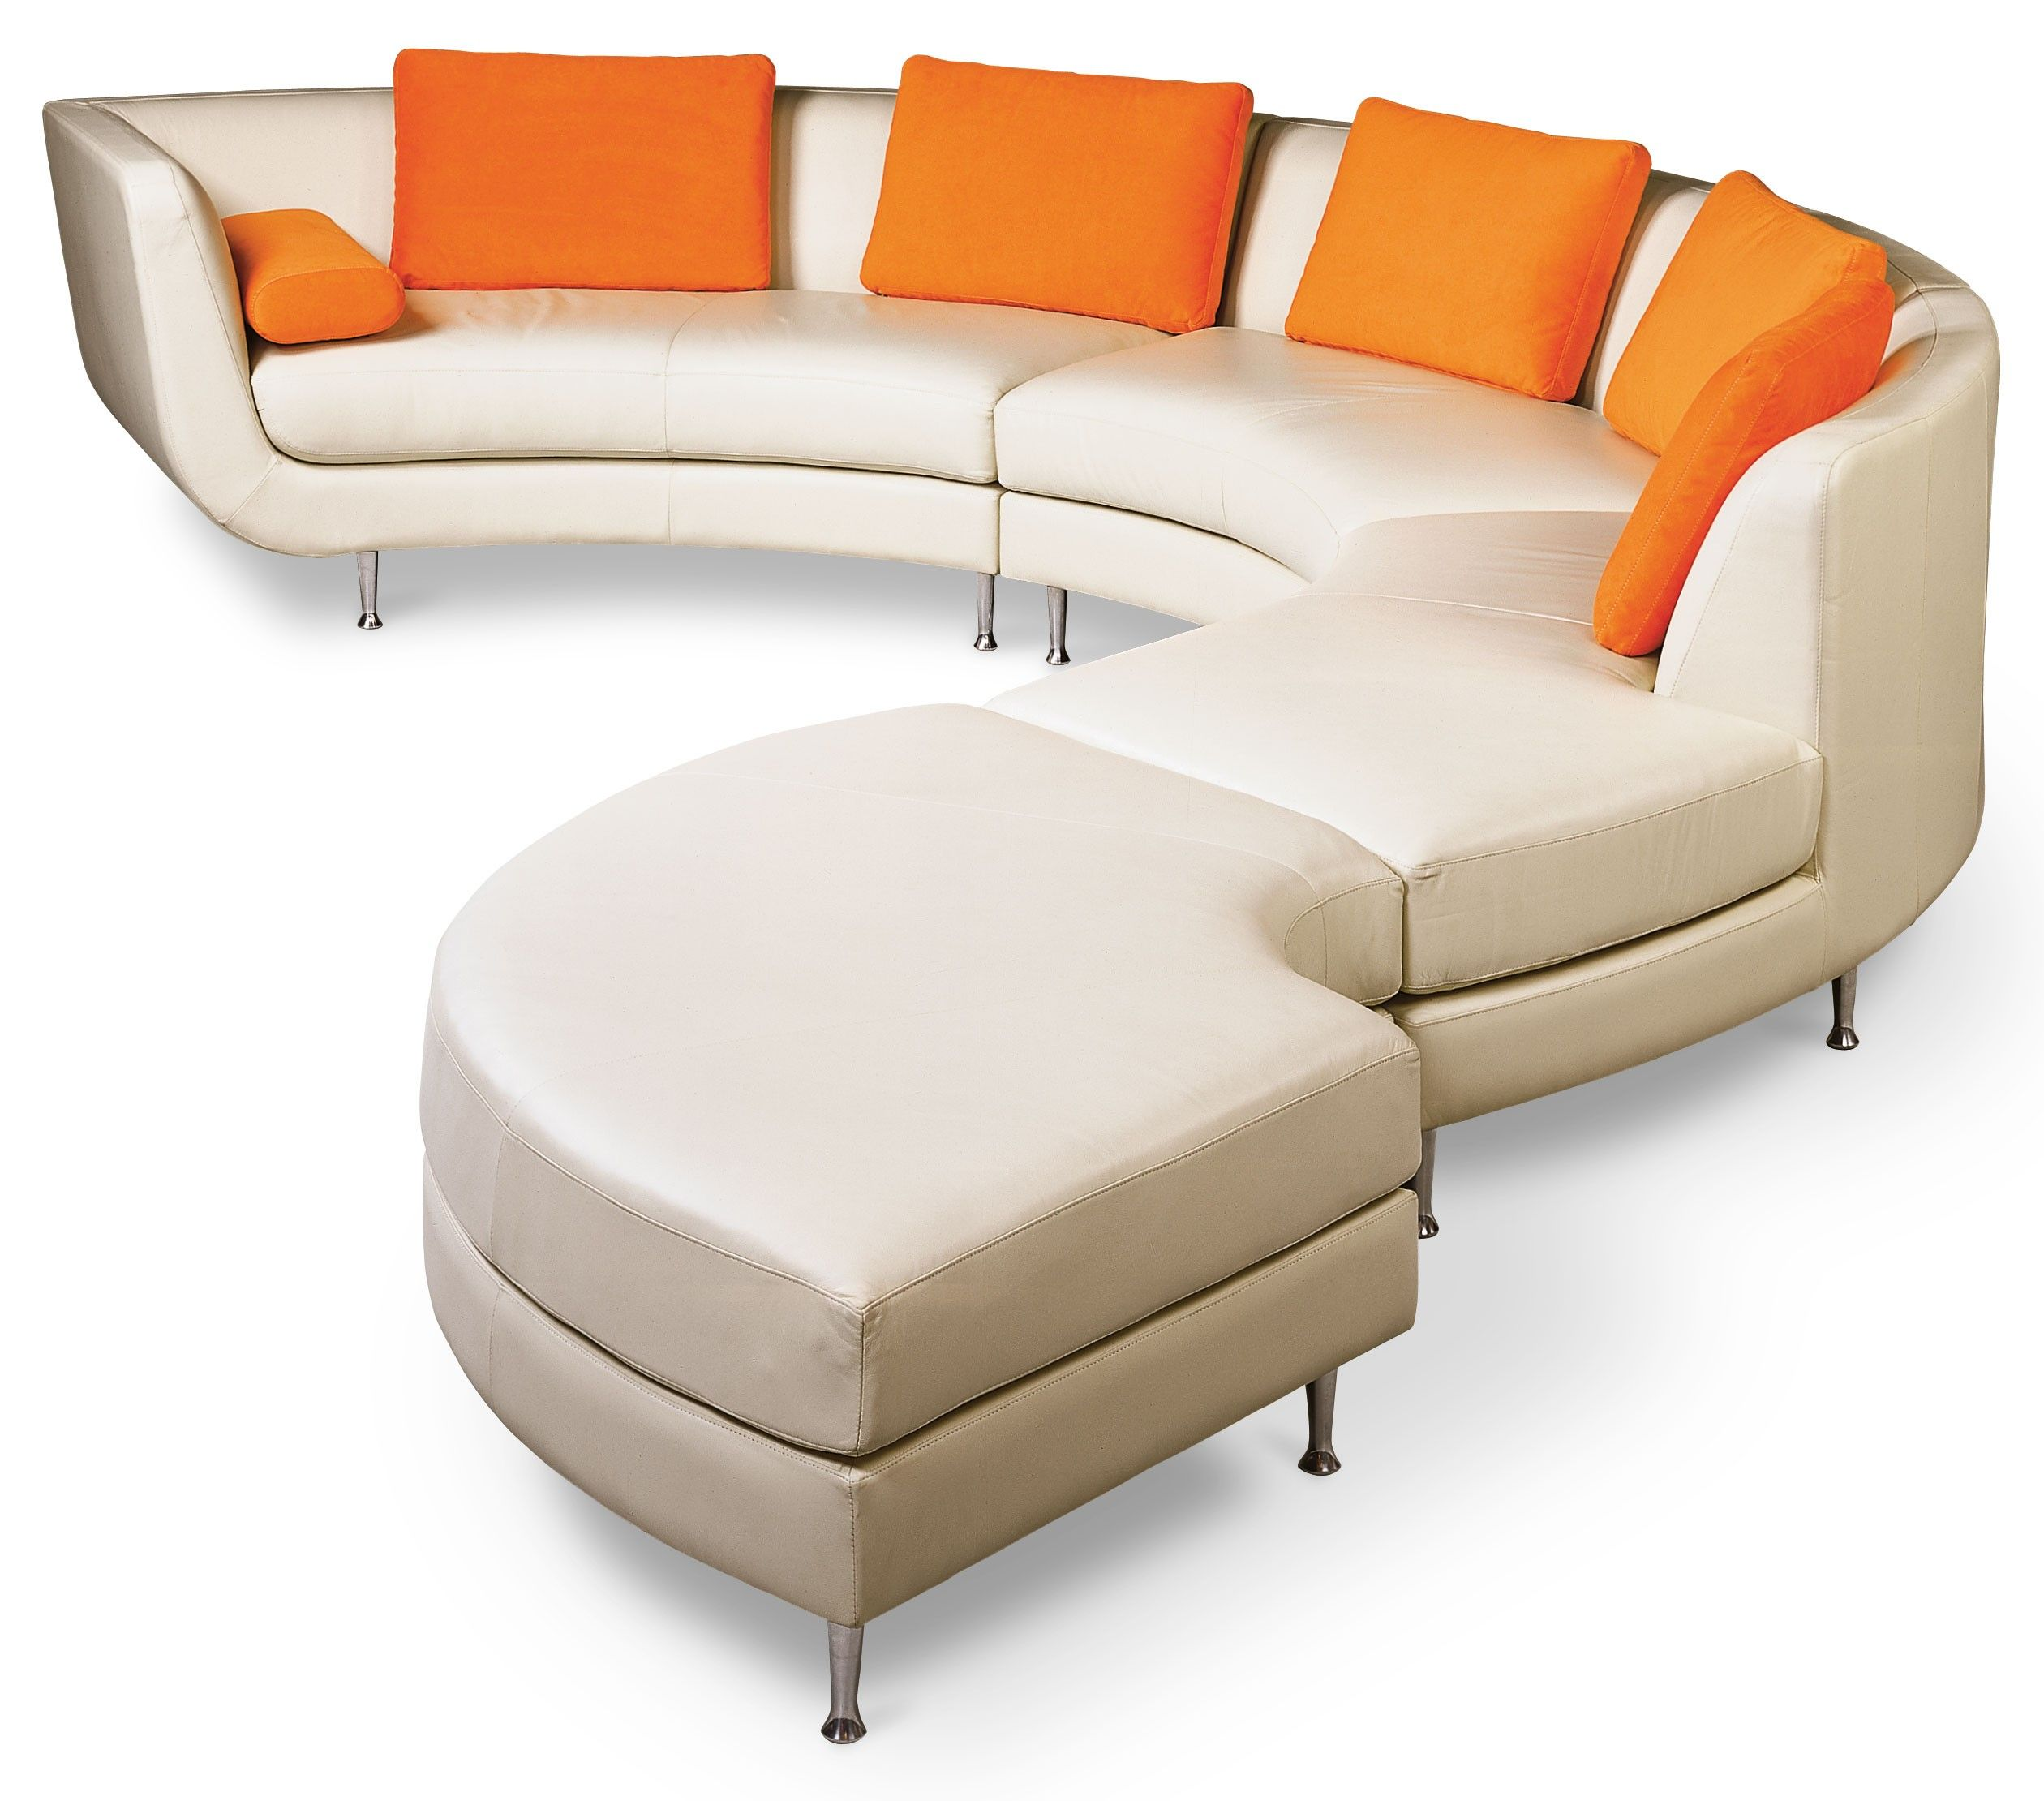 Awesome AMERICAN LEATHER Menlo Park Curvy Sofa